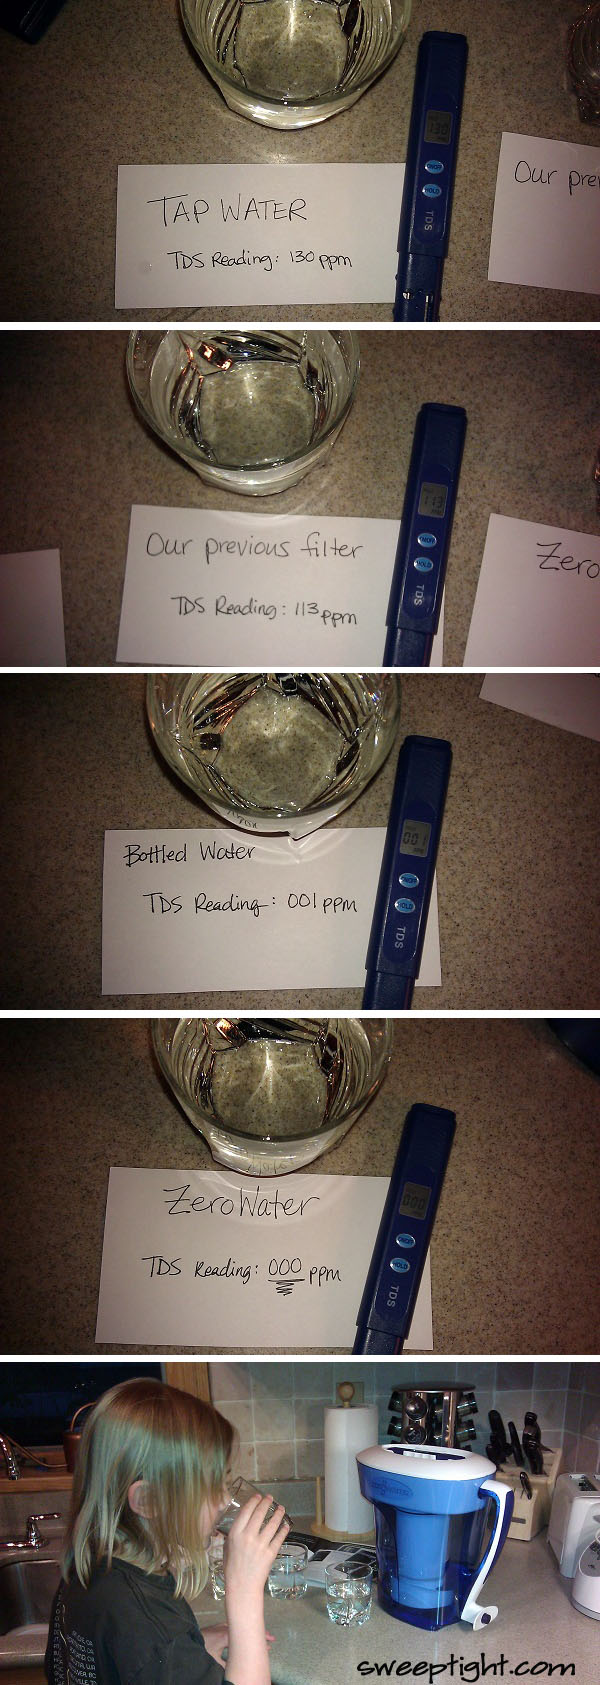 Clean drinking water test